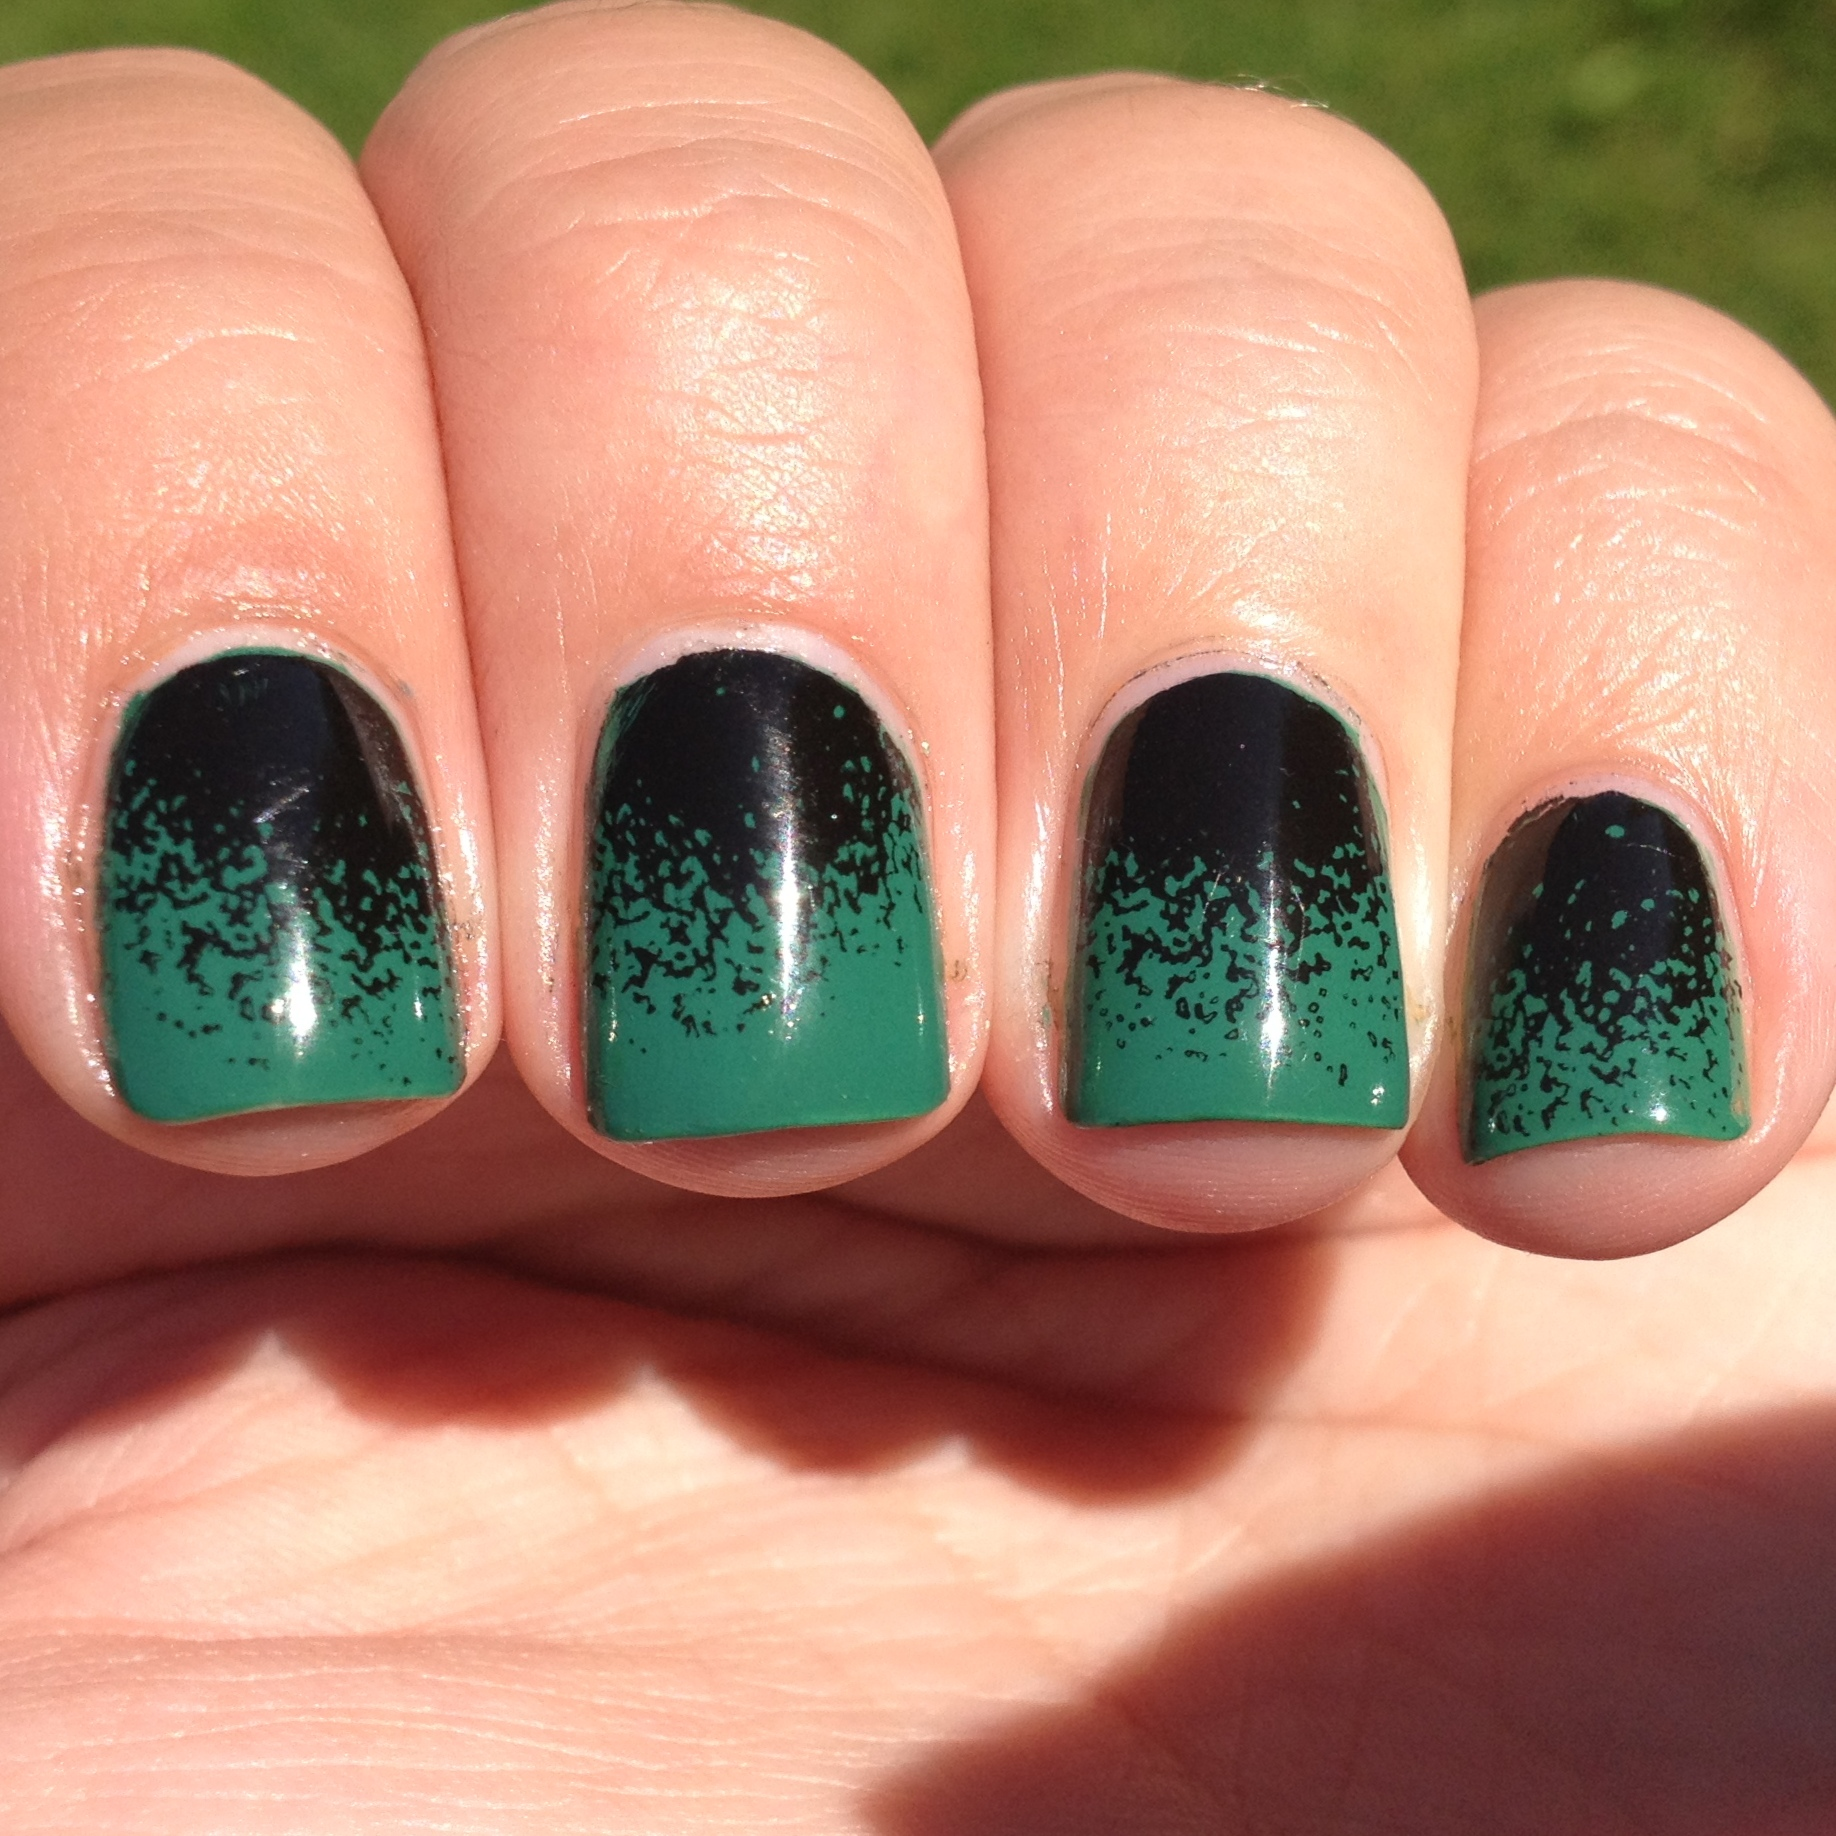 Wonderful Ysl Nail Polish Review Huge Opi Glitter Nail Polish Names Solid Organic Nail Polish Ingredients Permeable Nail Polish Old Nails Art Stamping BlueSimple Nail Art Ideas For Beginners Gradient\u0026#39; Nail Art Is About To Become Your New Obsession ..